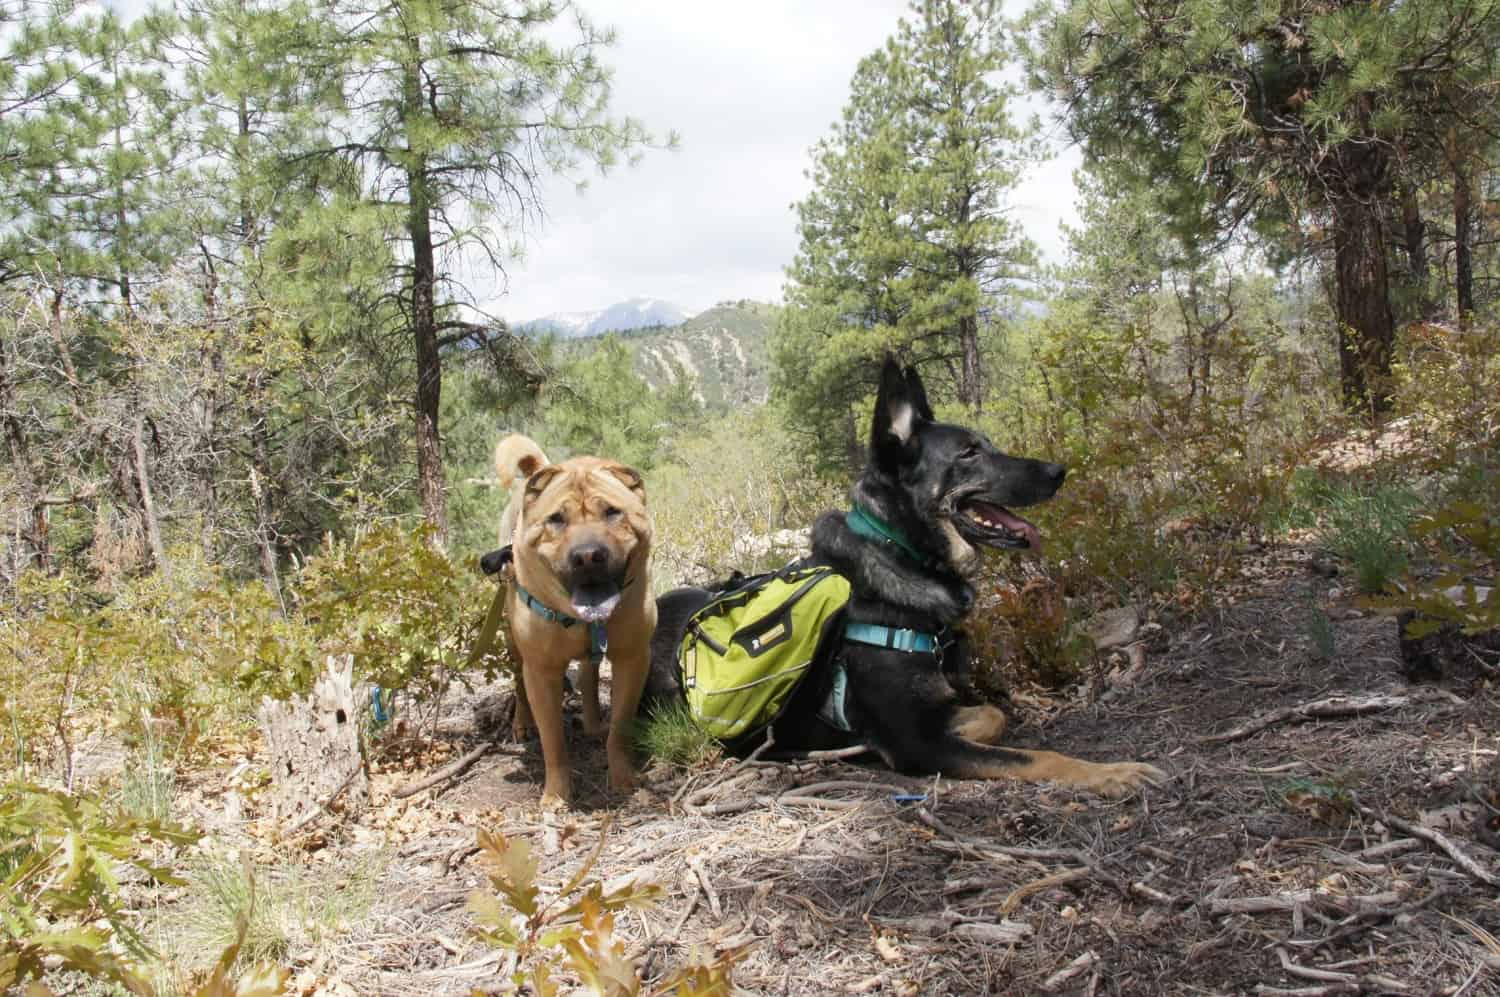 Rio Grande National Forest - Continental Divide Trail - Chama, NM